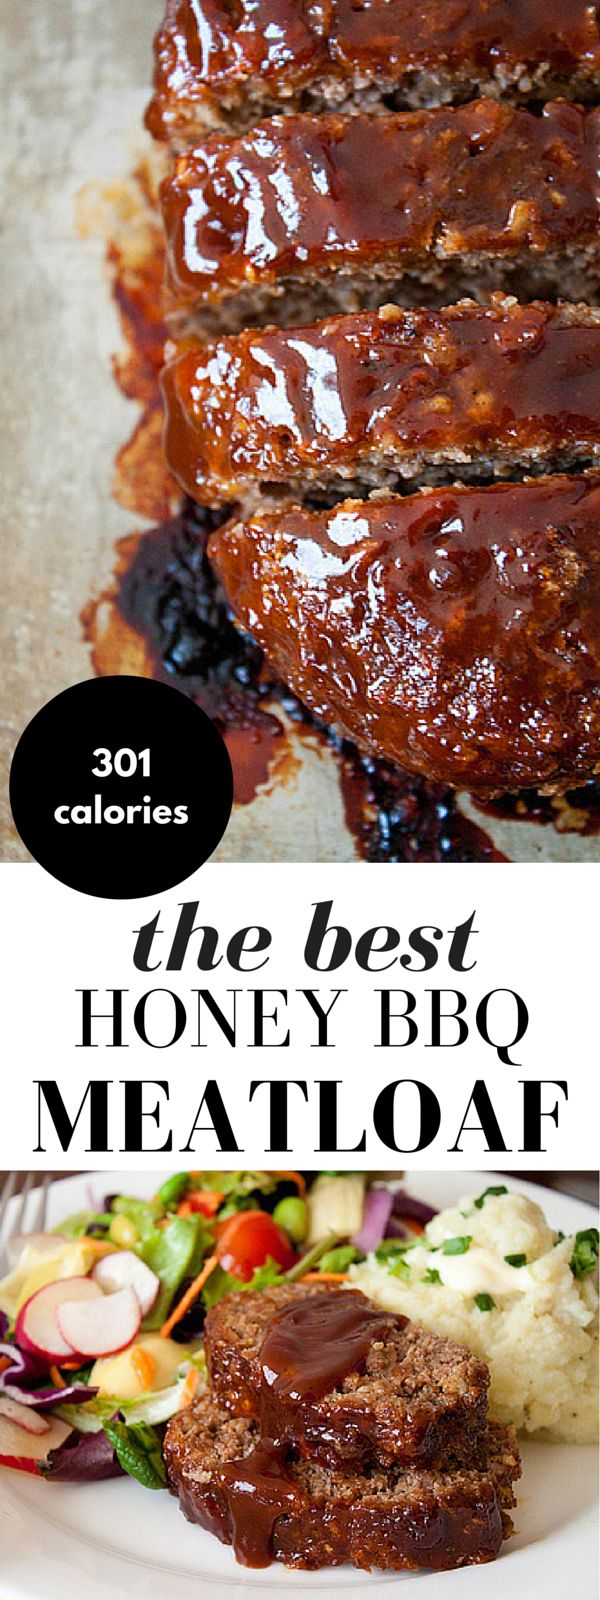 Honey Barbecue Meatloaf - Andie Mitchell Honey Barbecue Meatloaf Recipe! This meatloaf recipe is made with bbq sauce and honey for added smokiness, a little sweetness, and moisture. It's everyone's favorite comfort food!